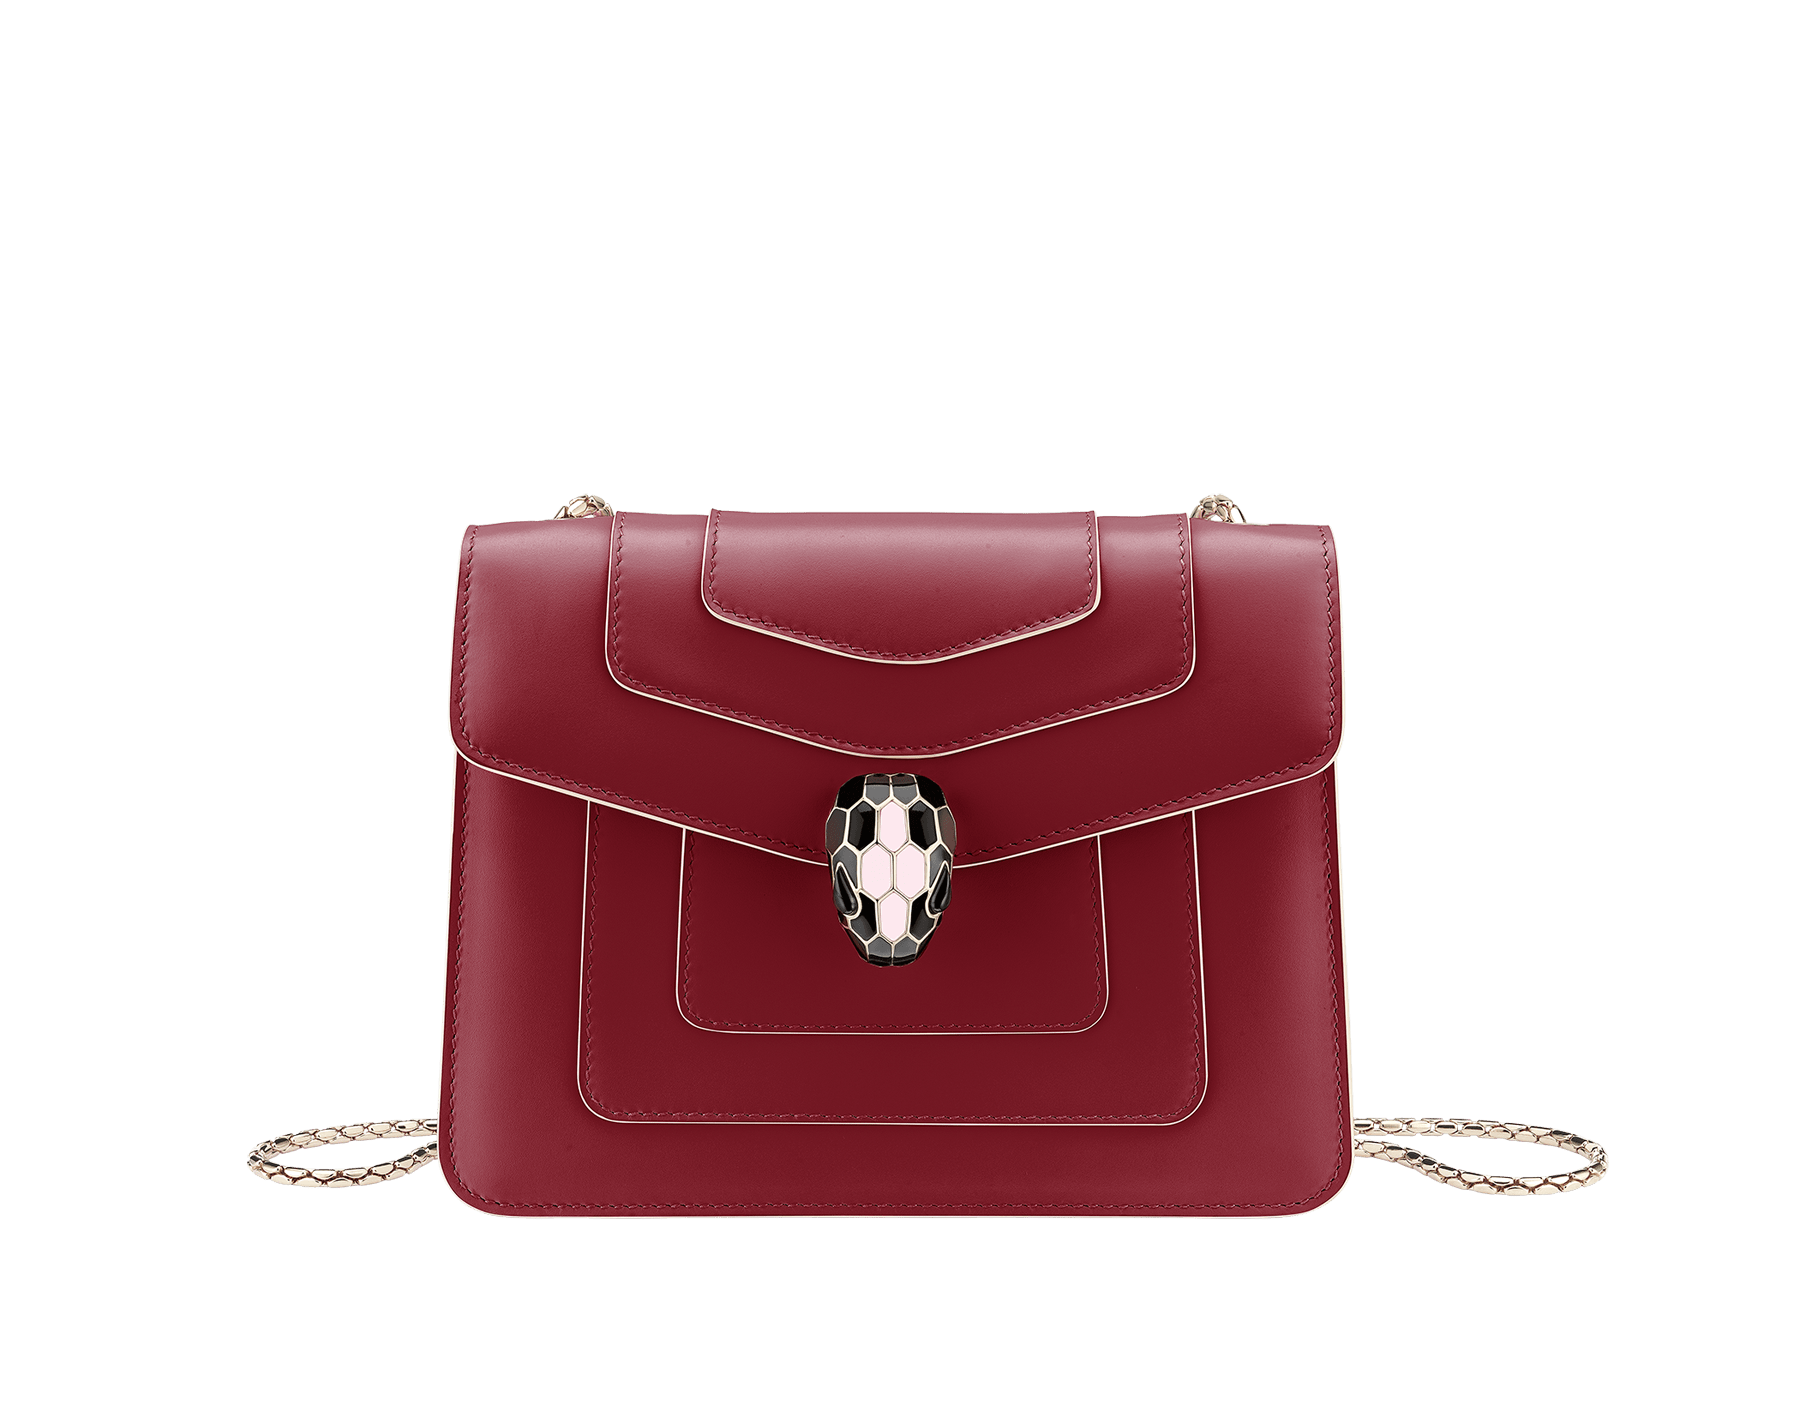 Serpenti Forever crossbody bag in Roman garnet calf leather, with rosa di francia calf leather sides. Iconic snakehead closure in light gold plated brass embellished with black and white enamel and green malachite eyes. 289035 image 3